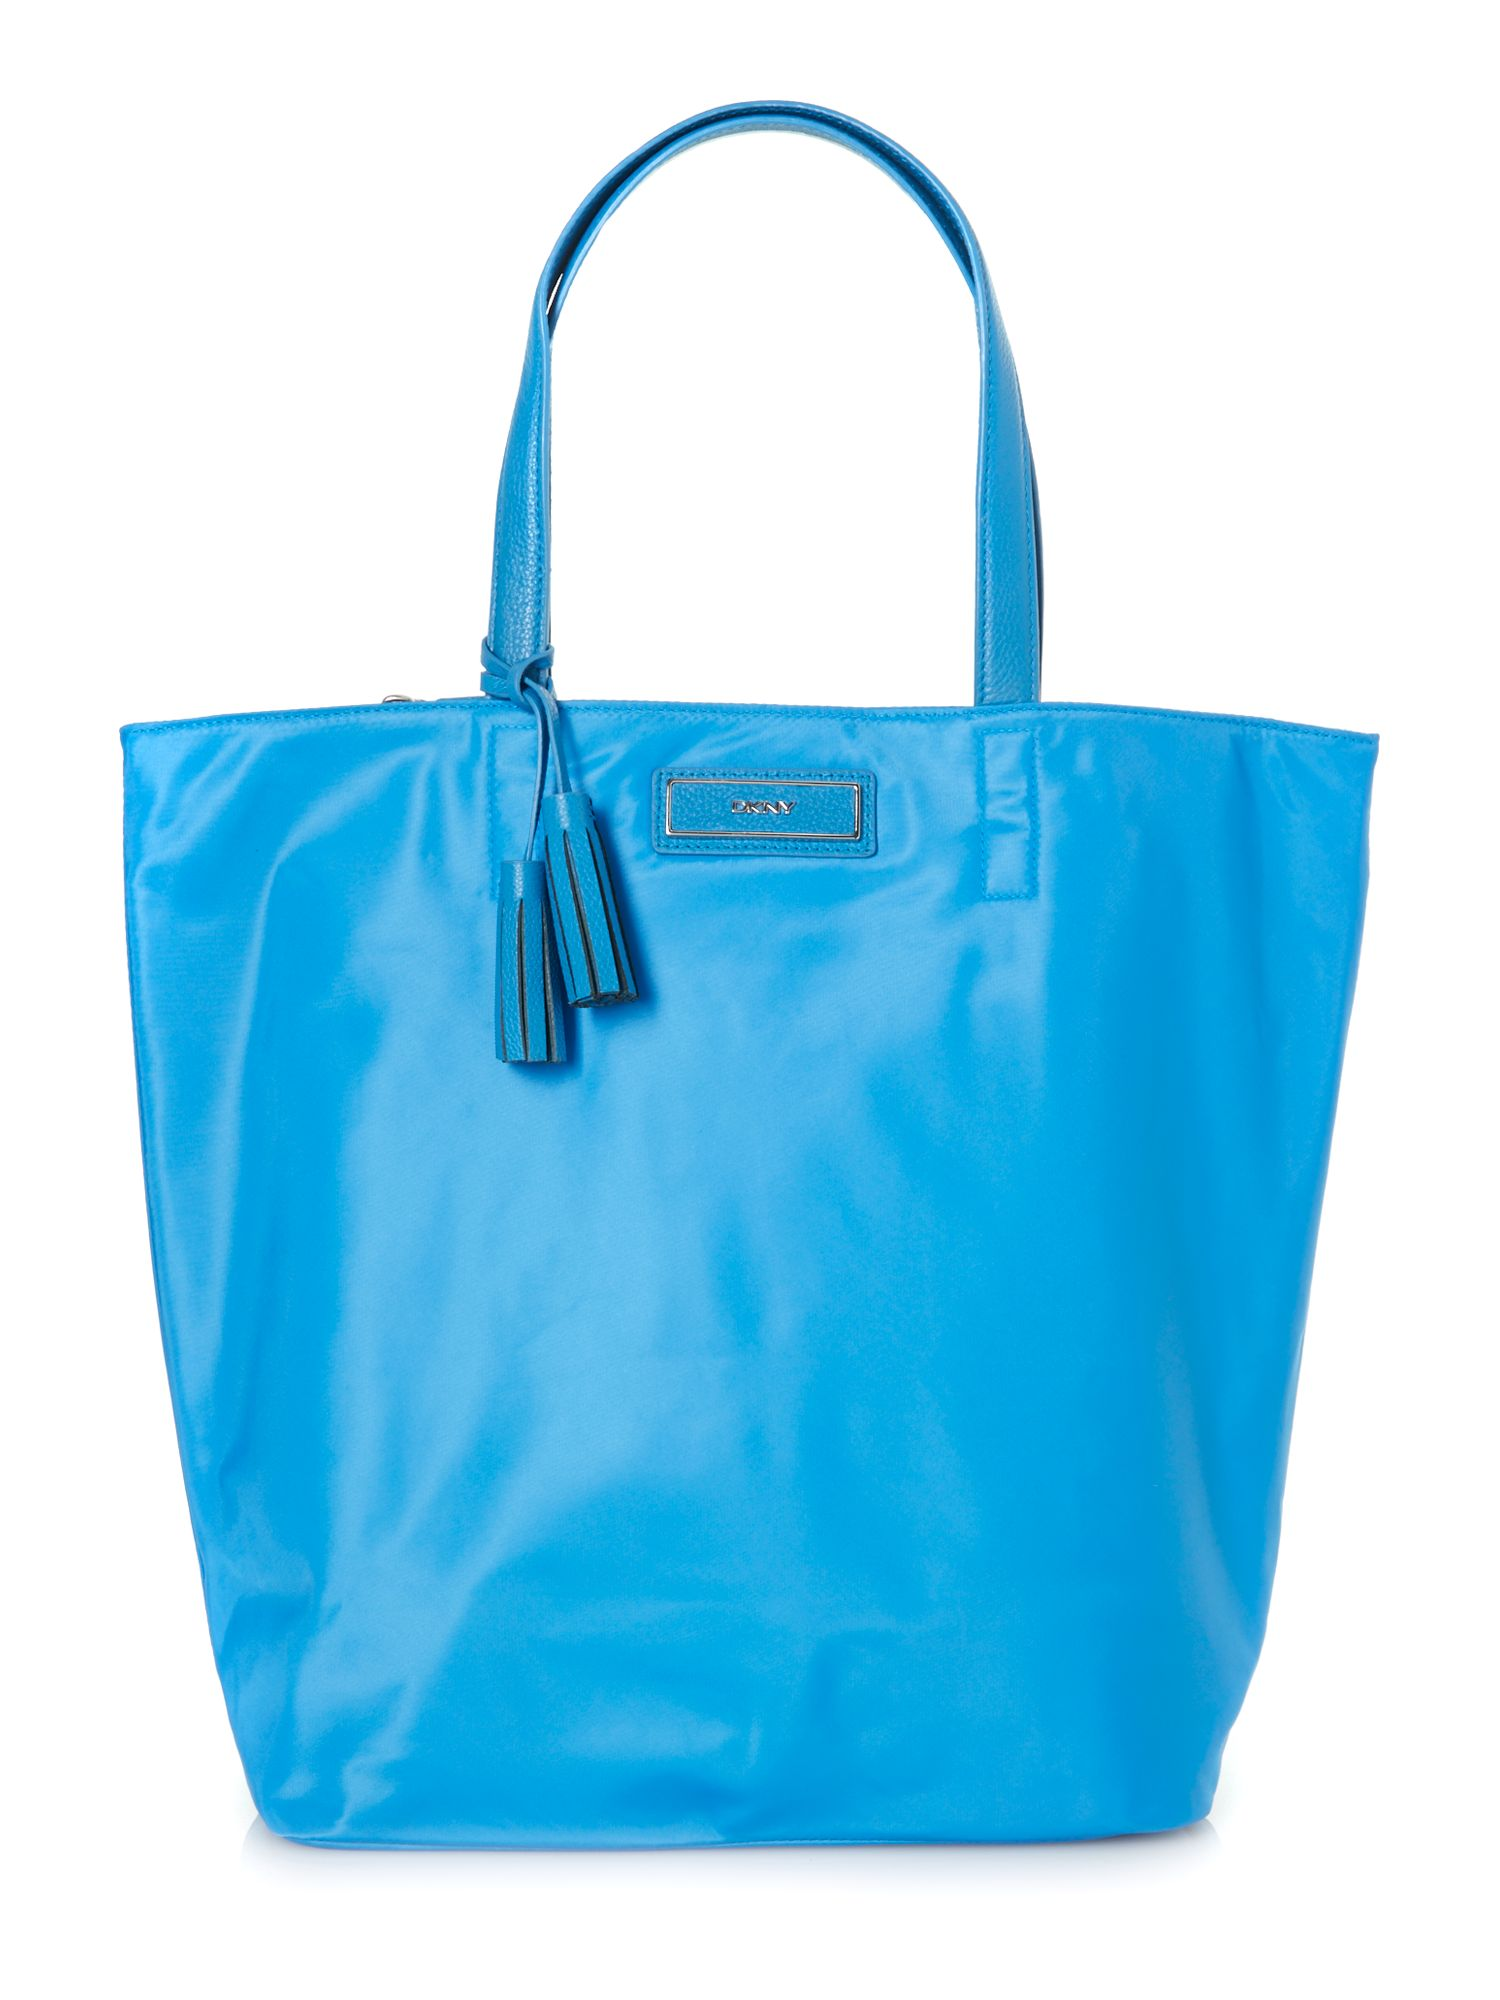 Nylon blue large tassel tote bag